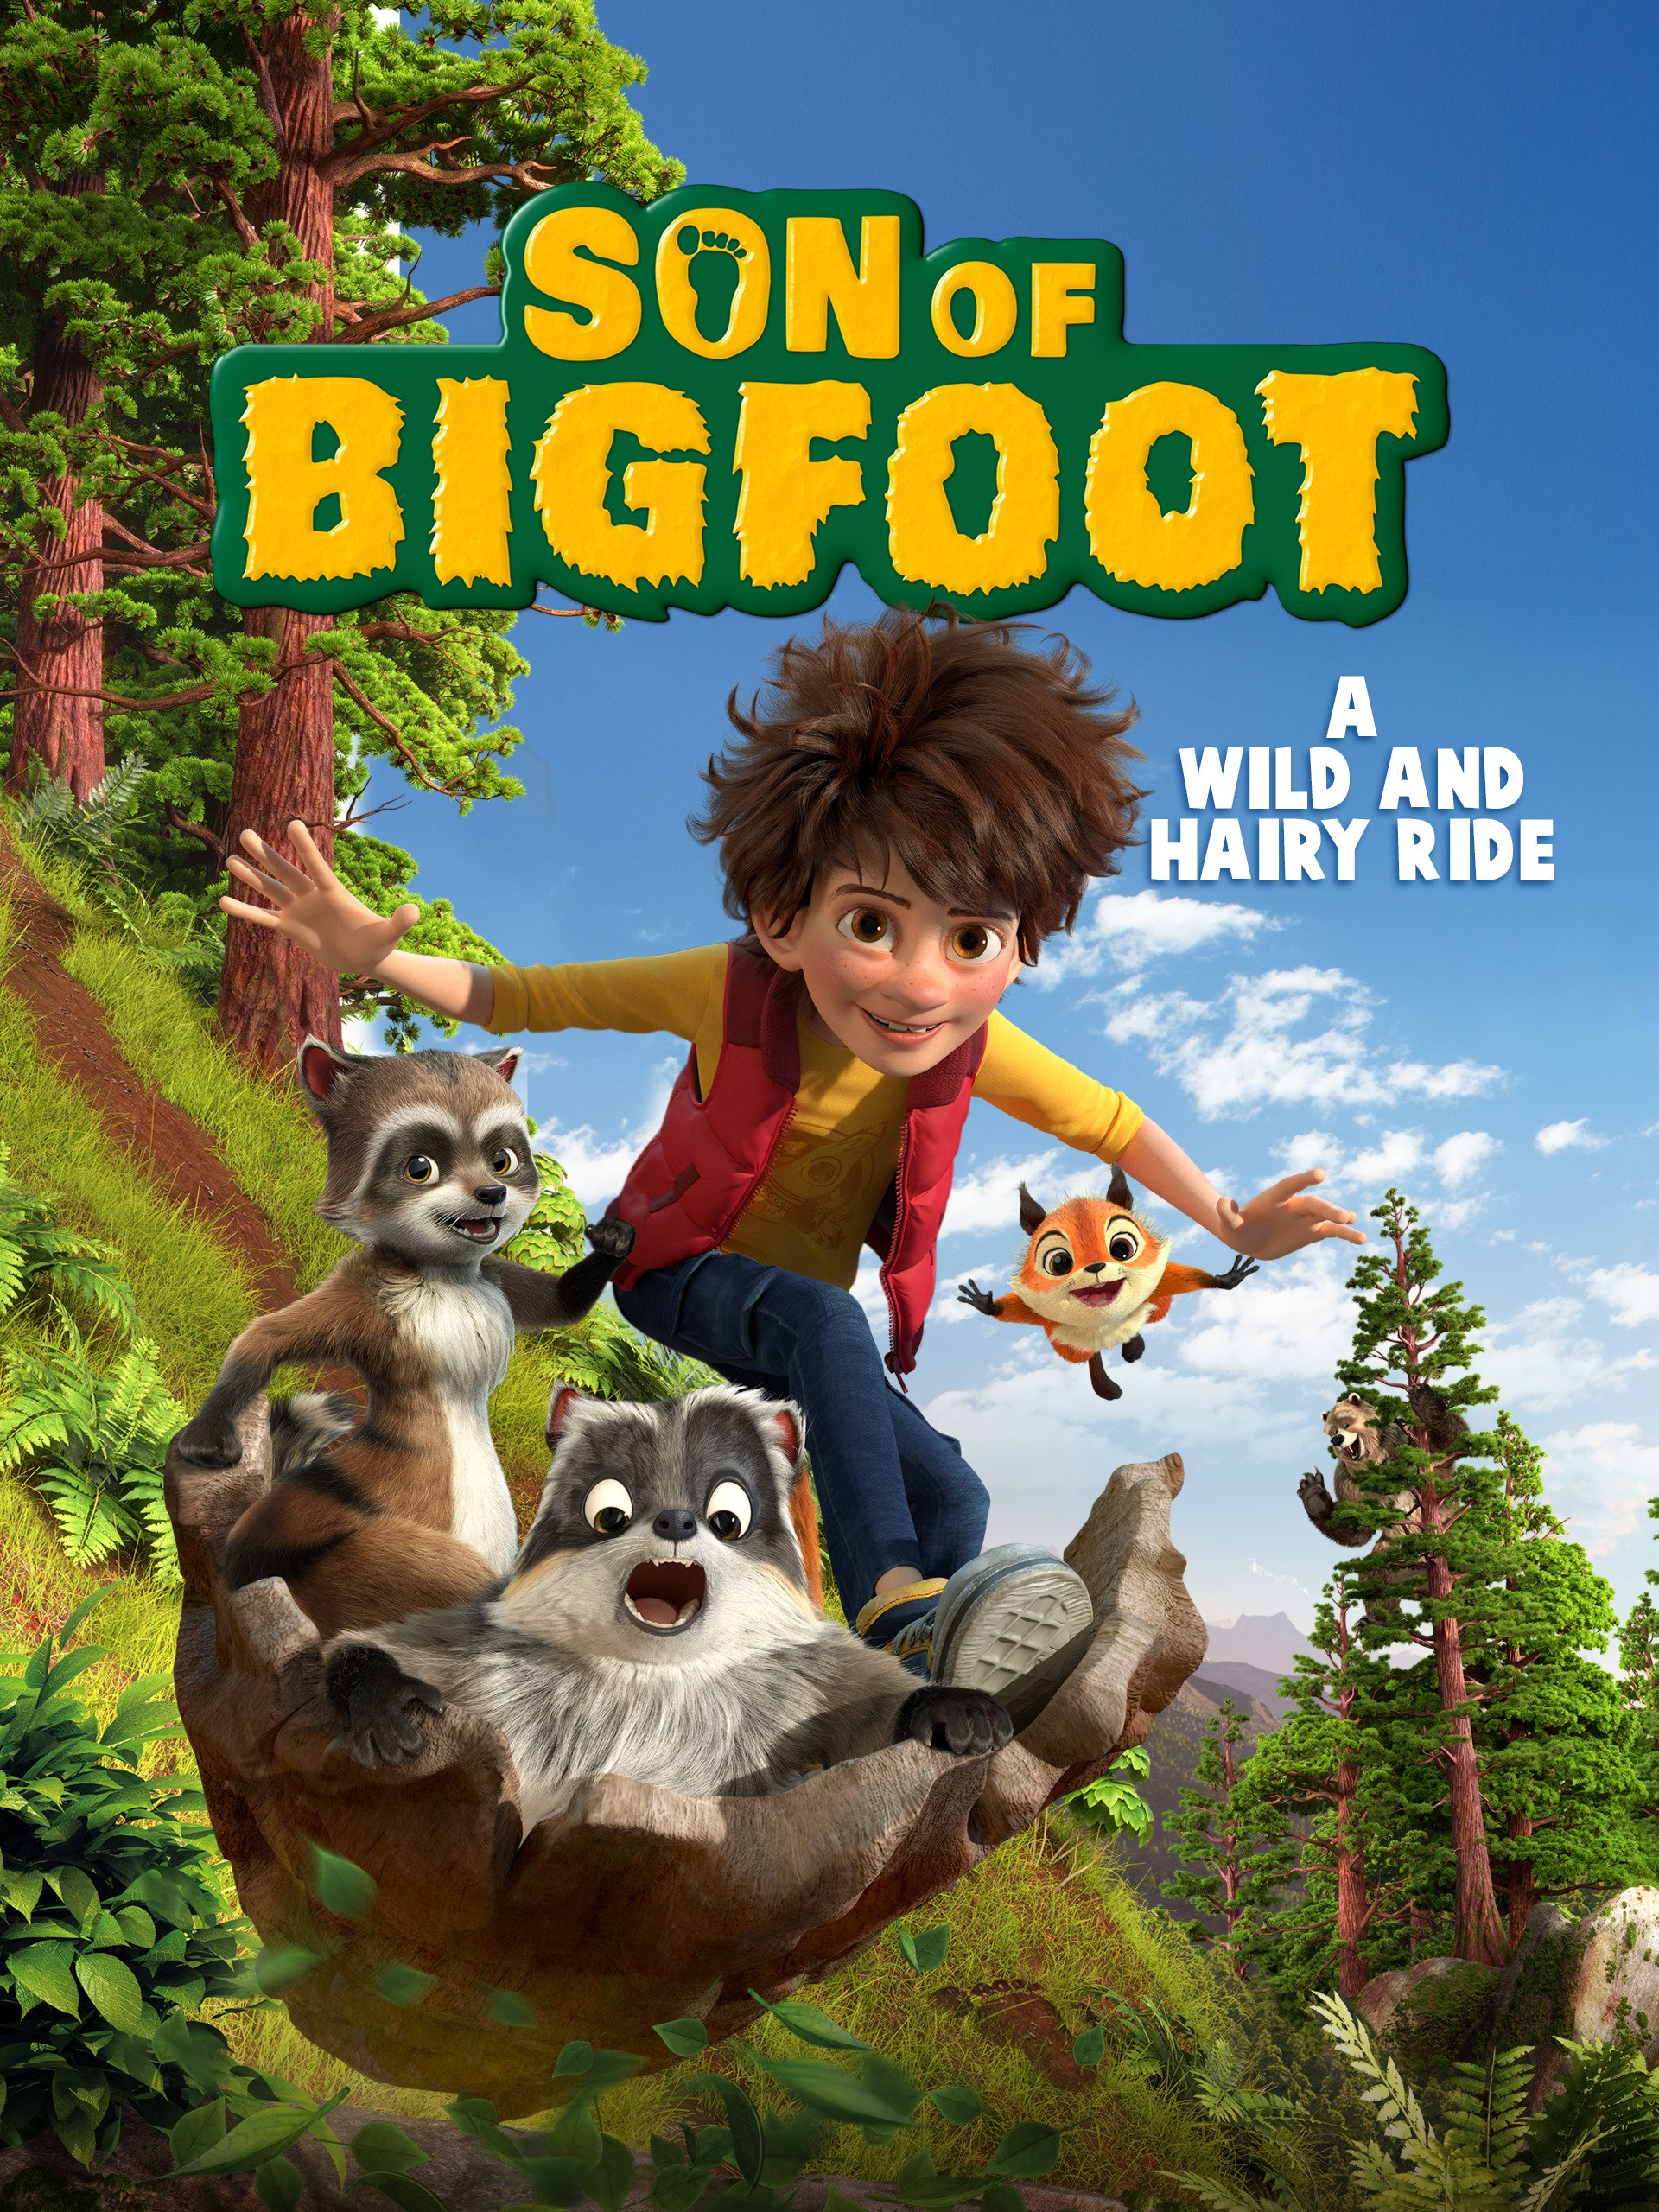 Son of the big foot